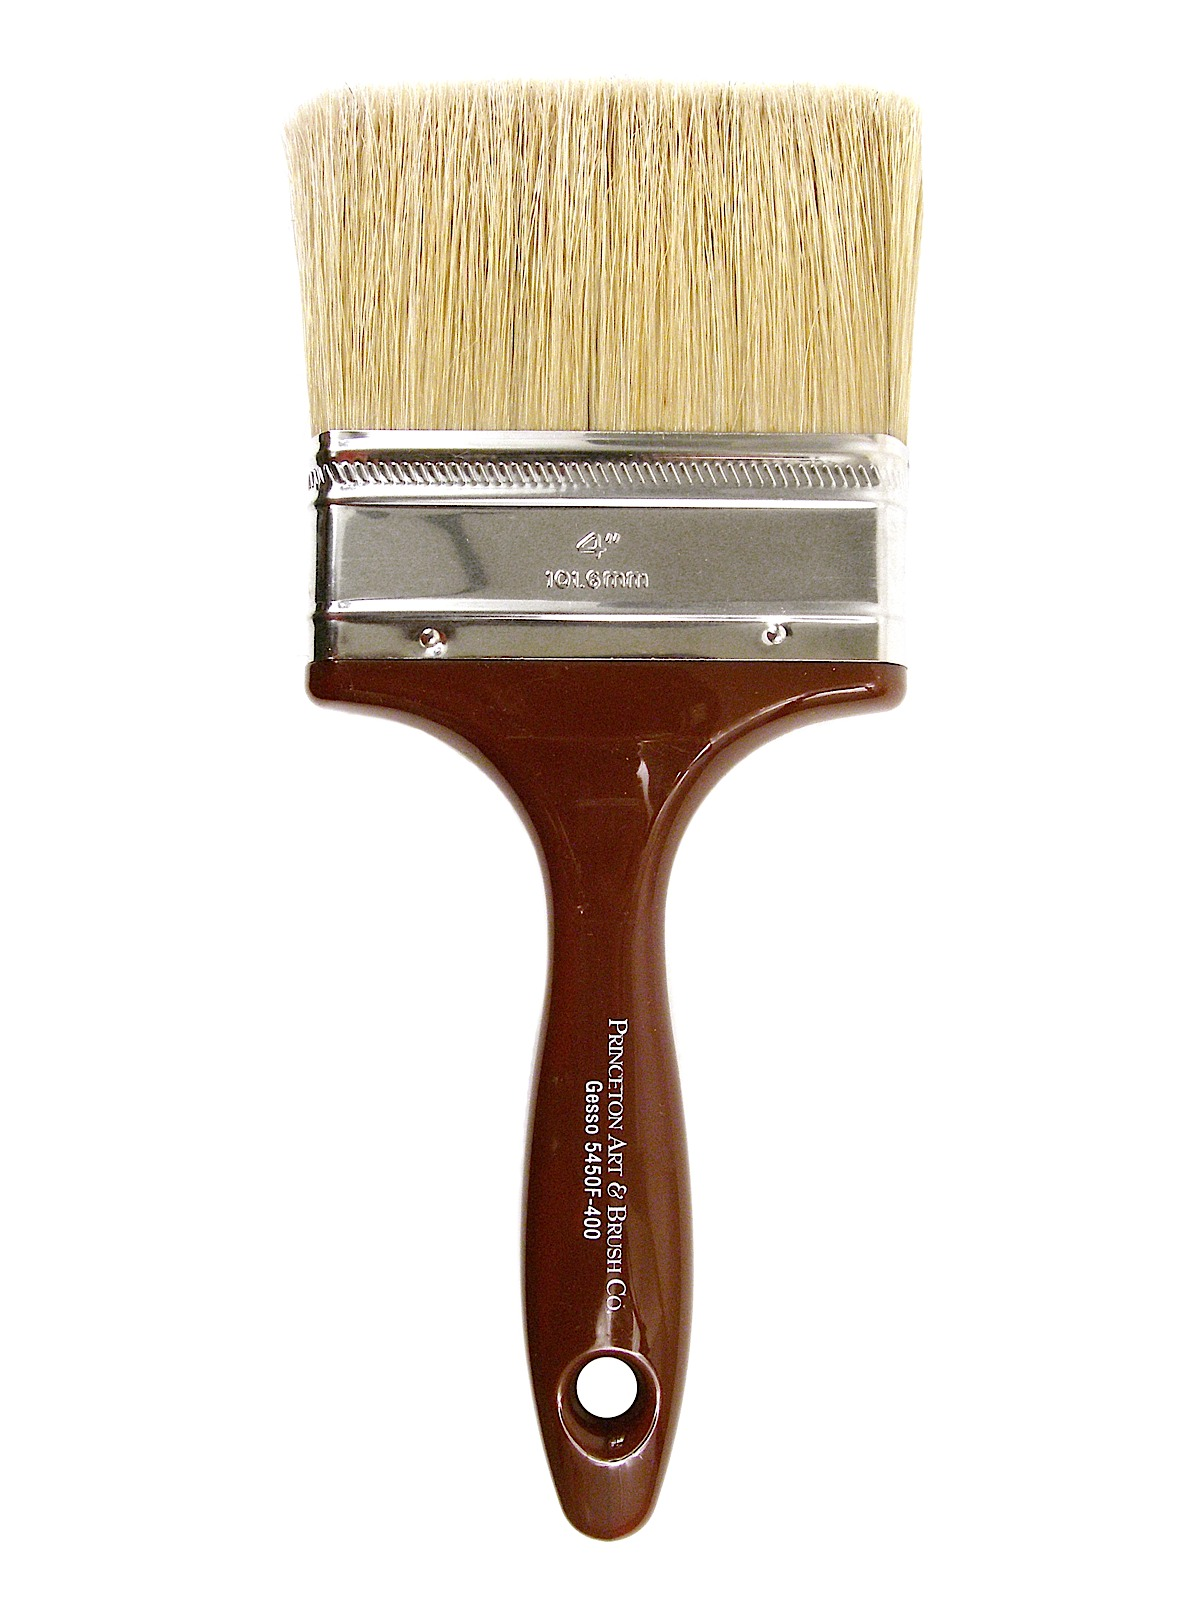 Series 5450 Flat Gesso Brush